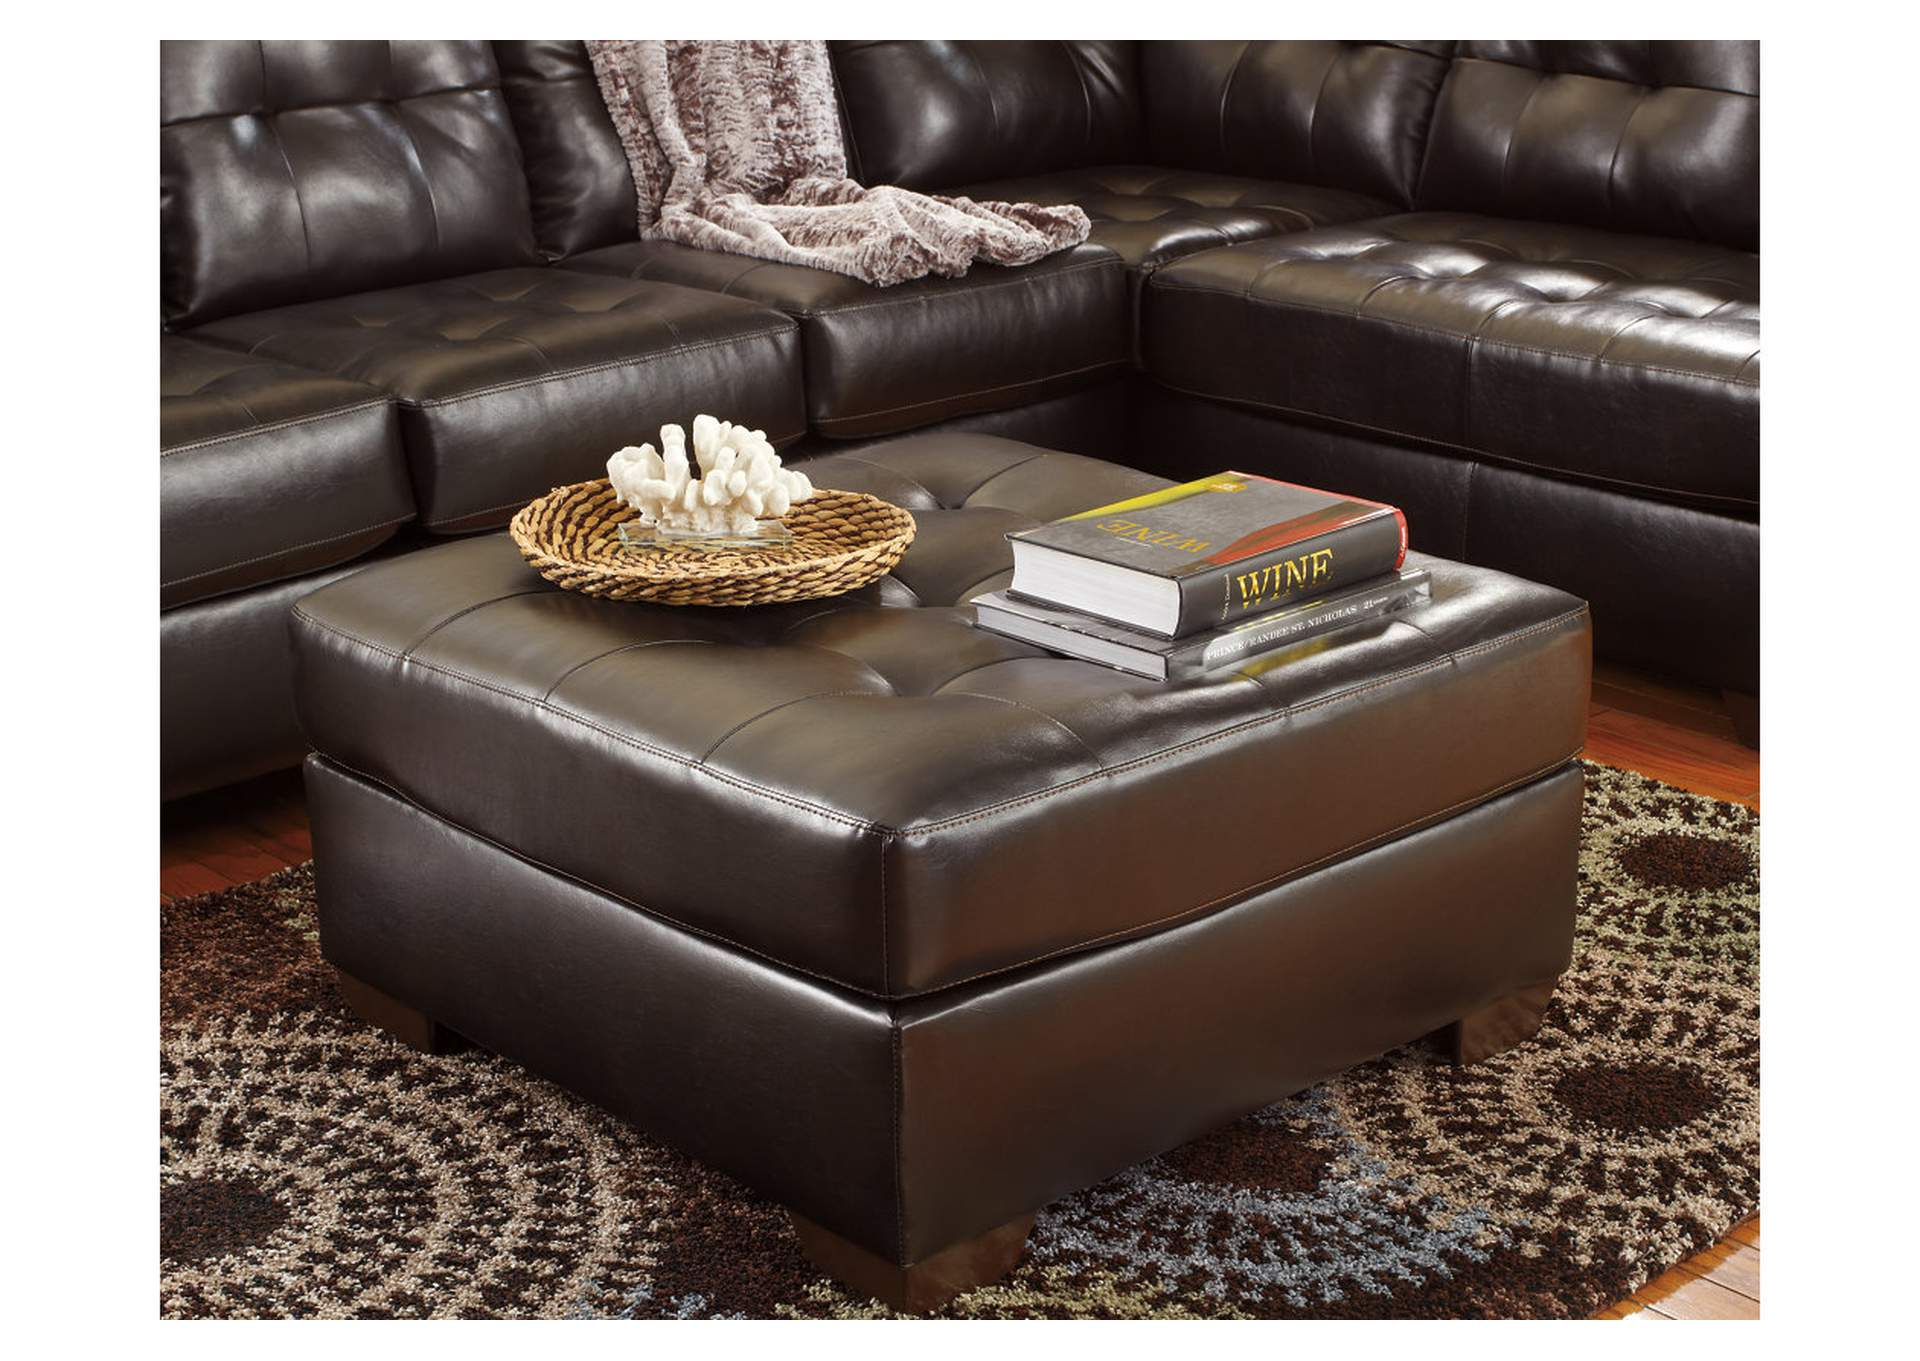 Alliston DuraBlend Chocolate Oversized Accent Ottoman,ABF Signature Design by Ashley